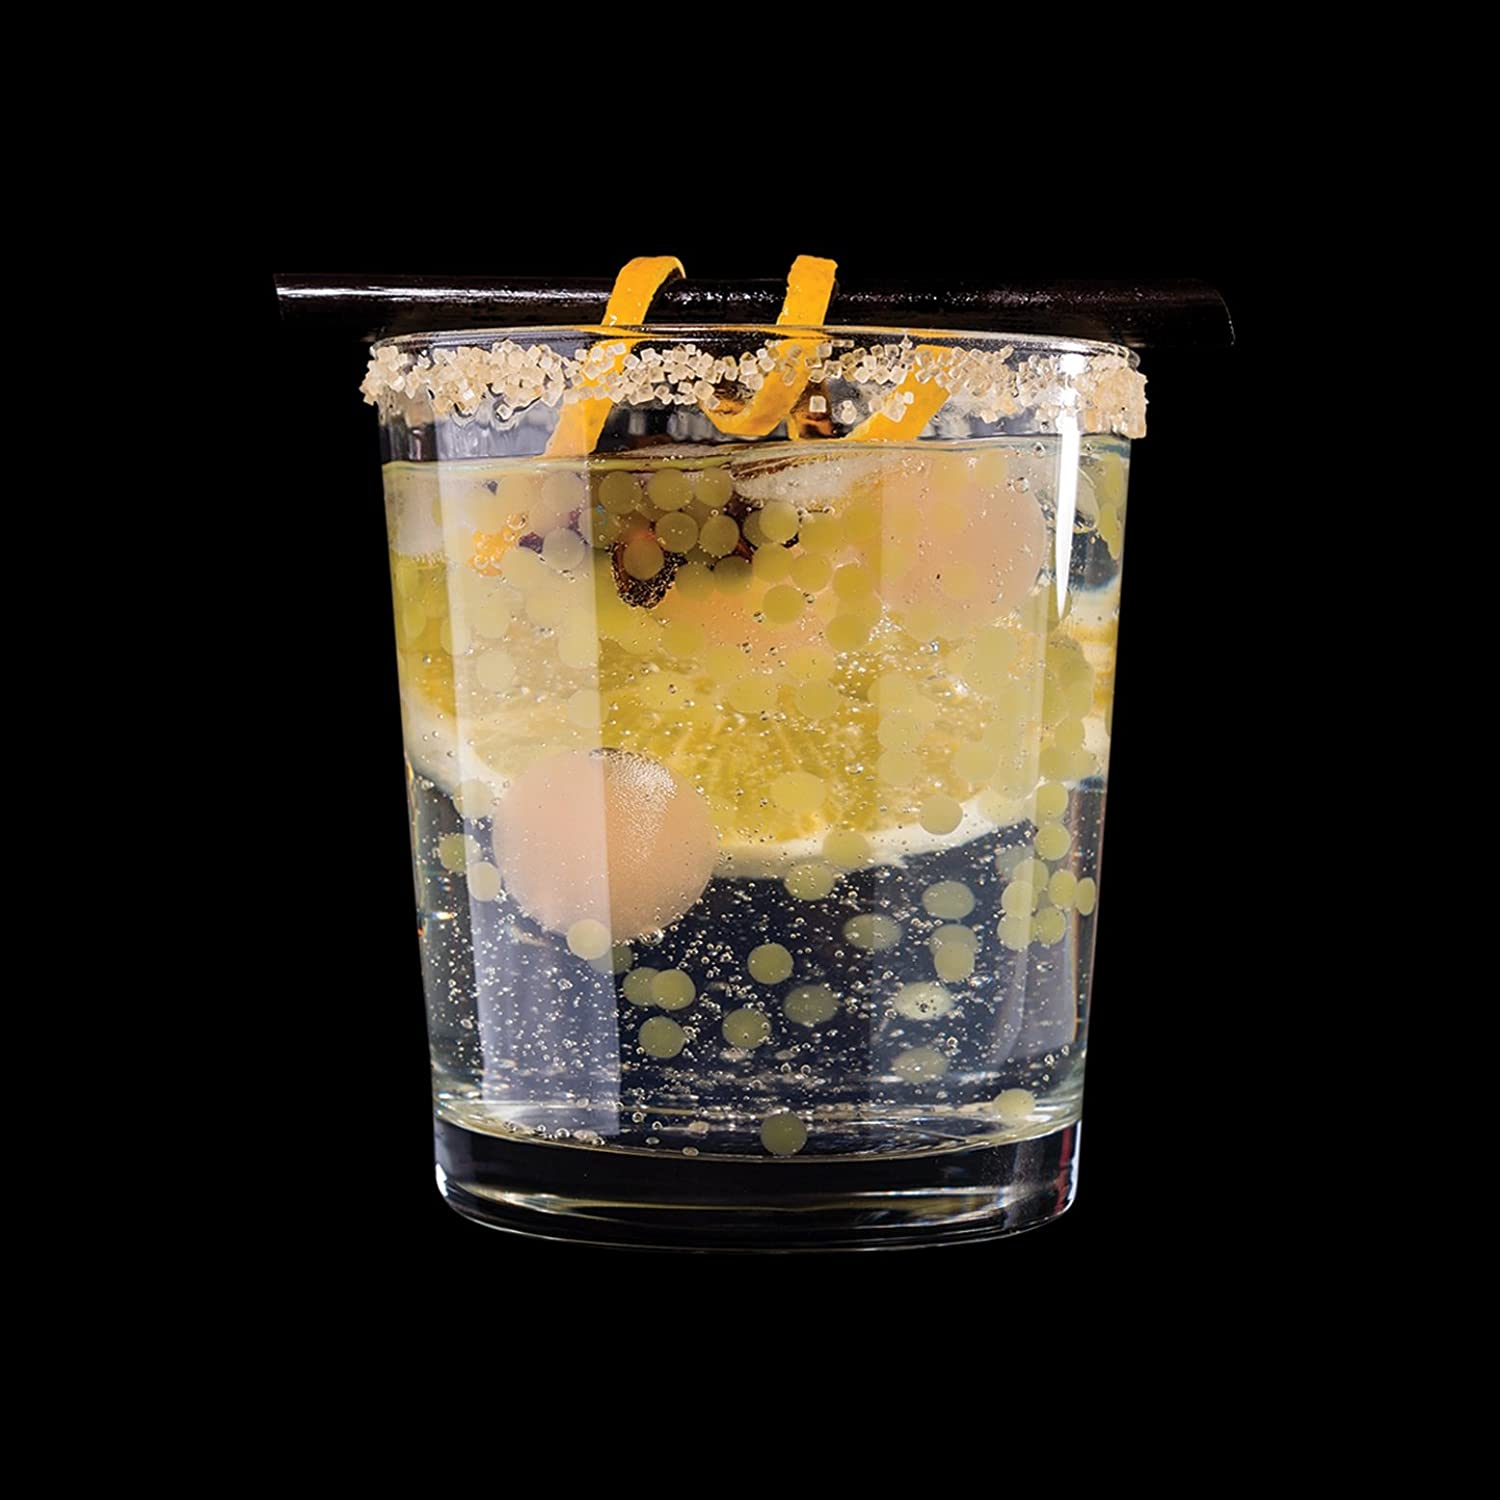 Gin and tonic r evolution molecular gastronomy kit mixology gifts set molecule r 8011120064096 - Cuisine r evolution recipes ...